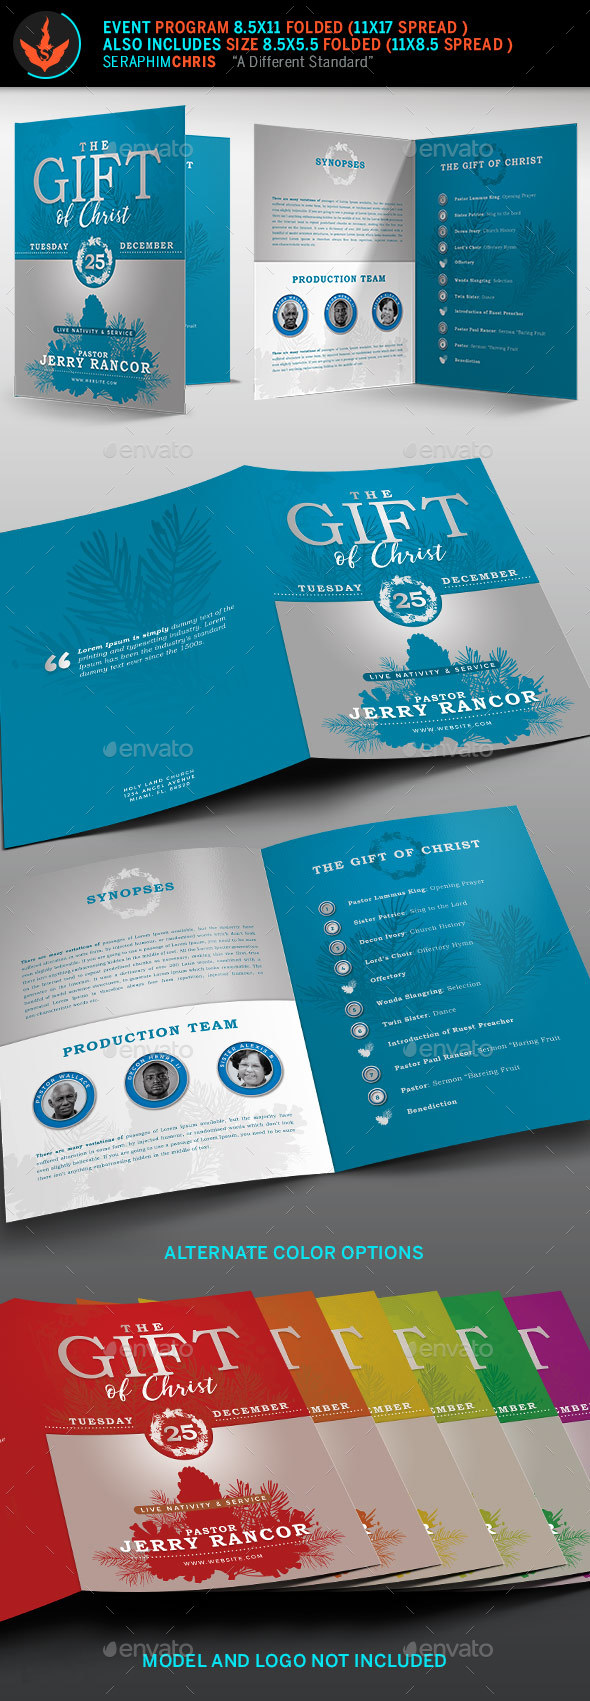 The Gift of Christ Christmas Program Template - Informational Brochures